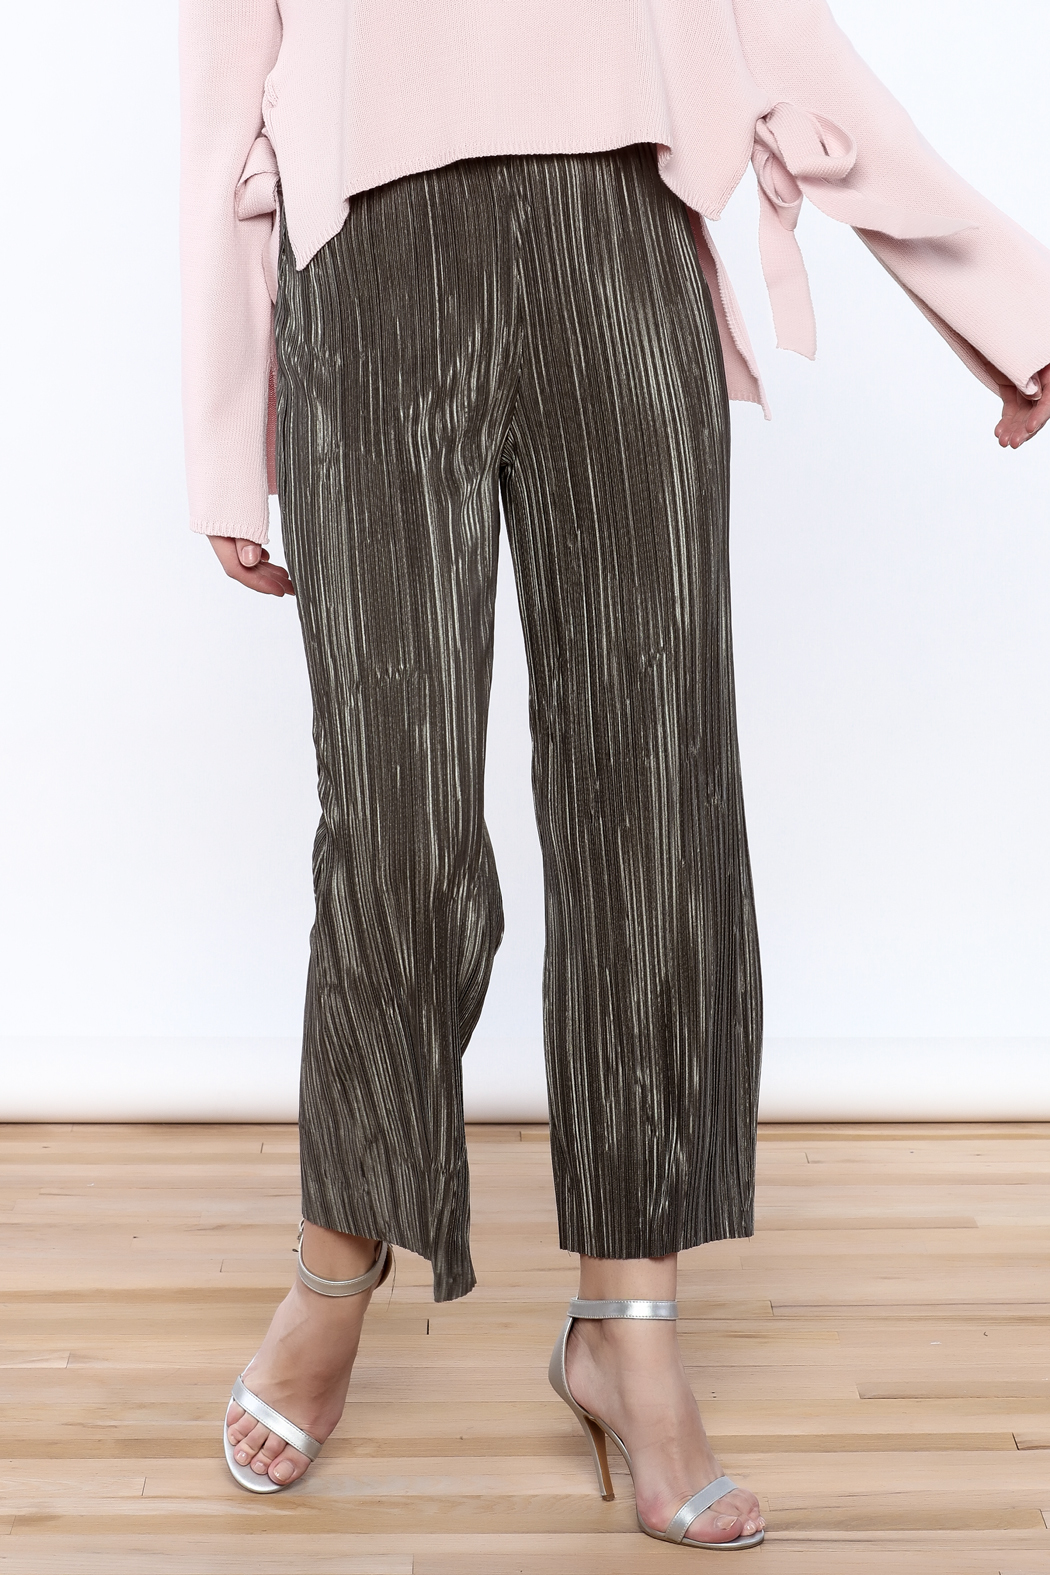 Pinkyotto Mini Pleats Fashion Pants - Main Image